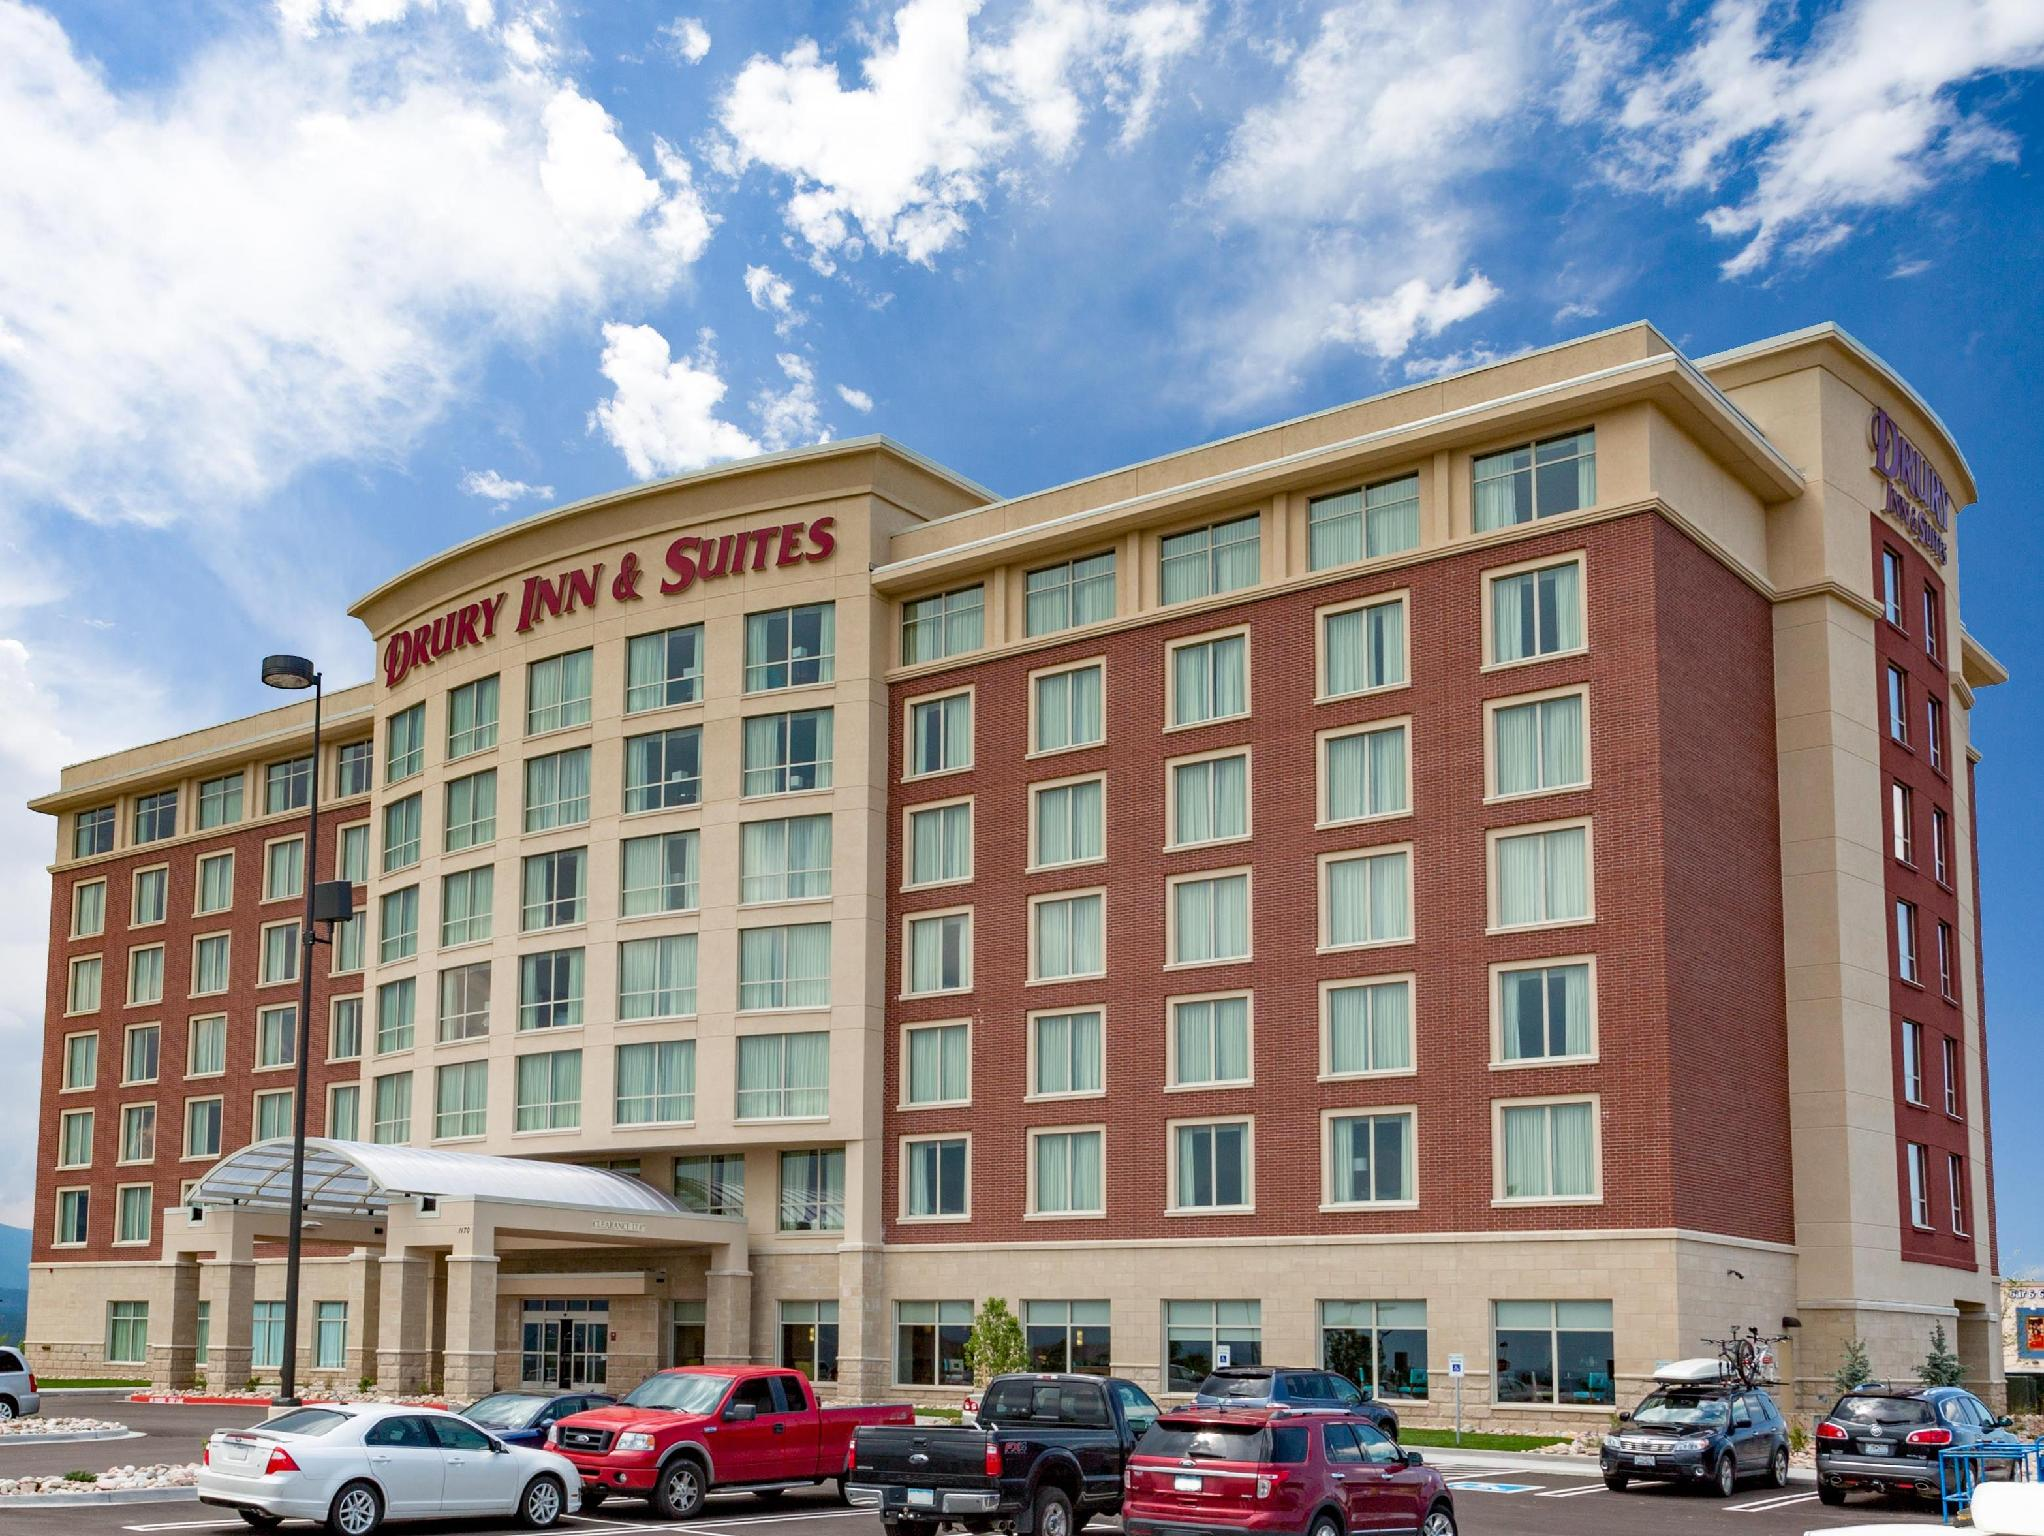 Hotel Review: Drury Inn & Suites Colorado Springs – Picture, Room Prices and Deals